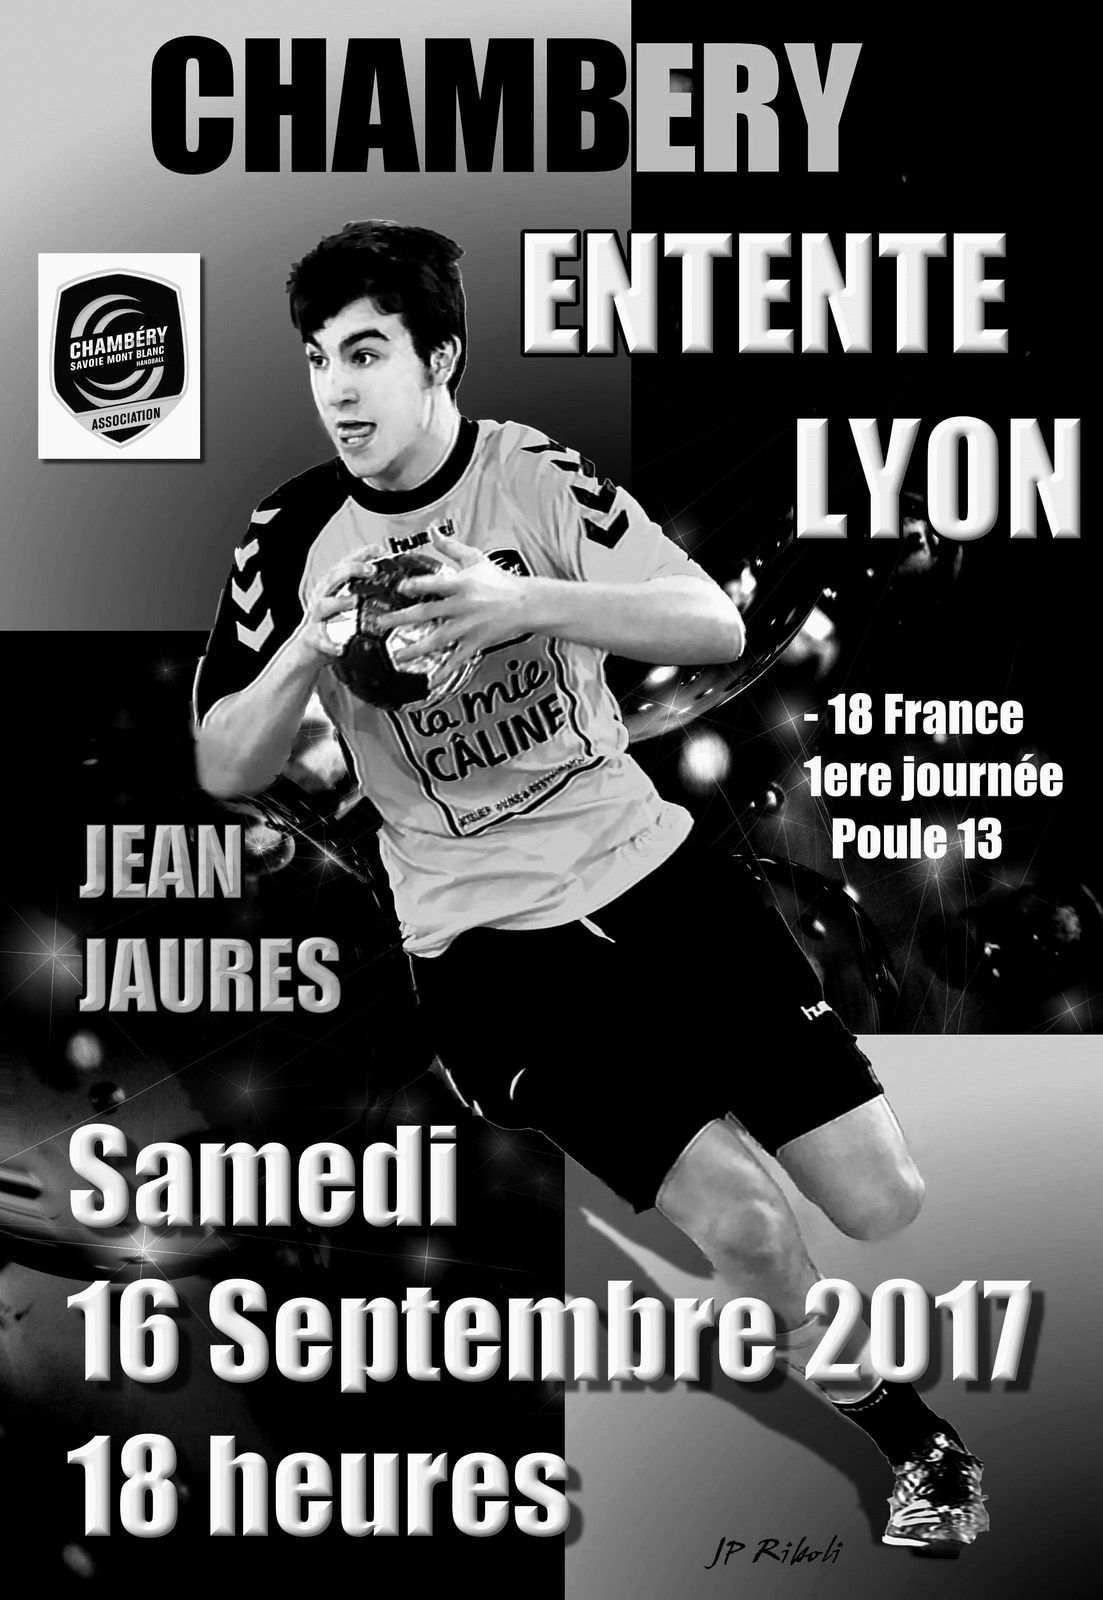 Le diaporama des photos noir et blanc - 18 France CHAMBERY - ENTENTE LYON 16092017